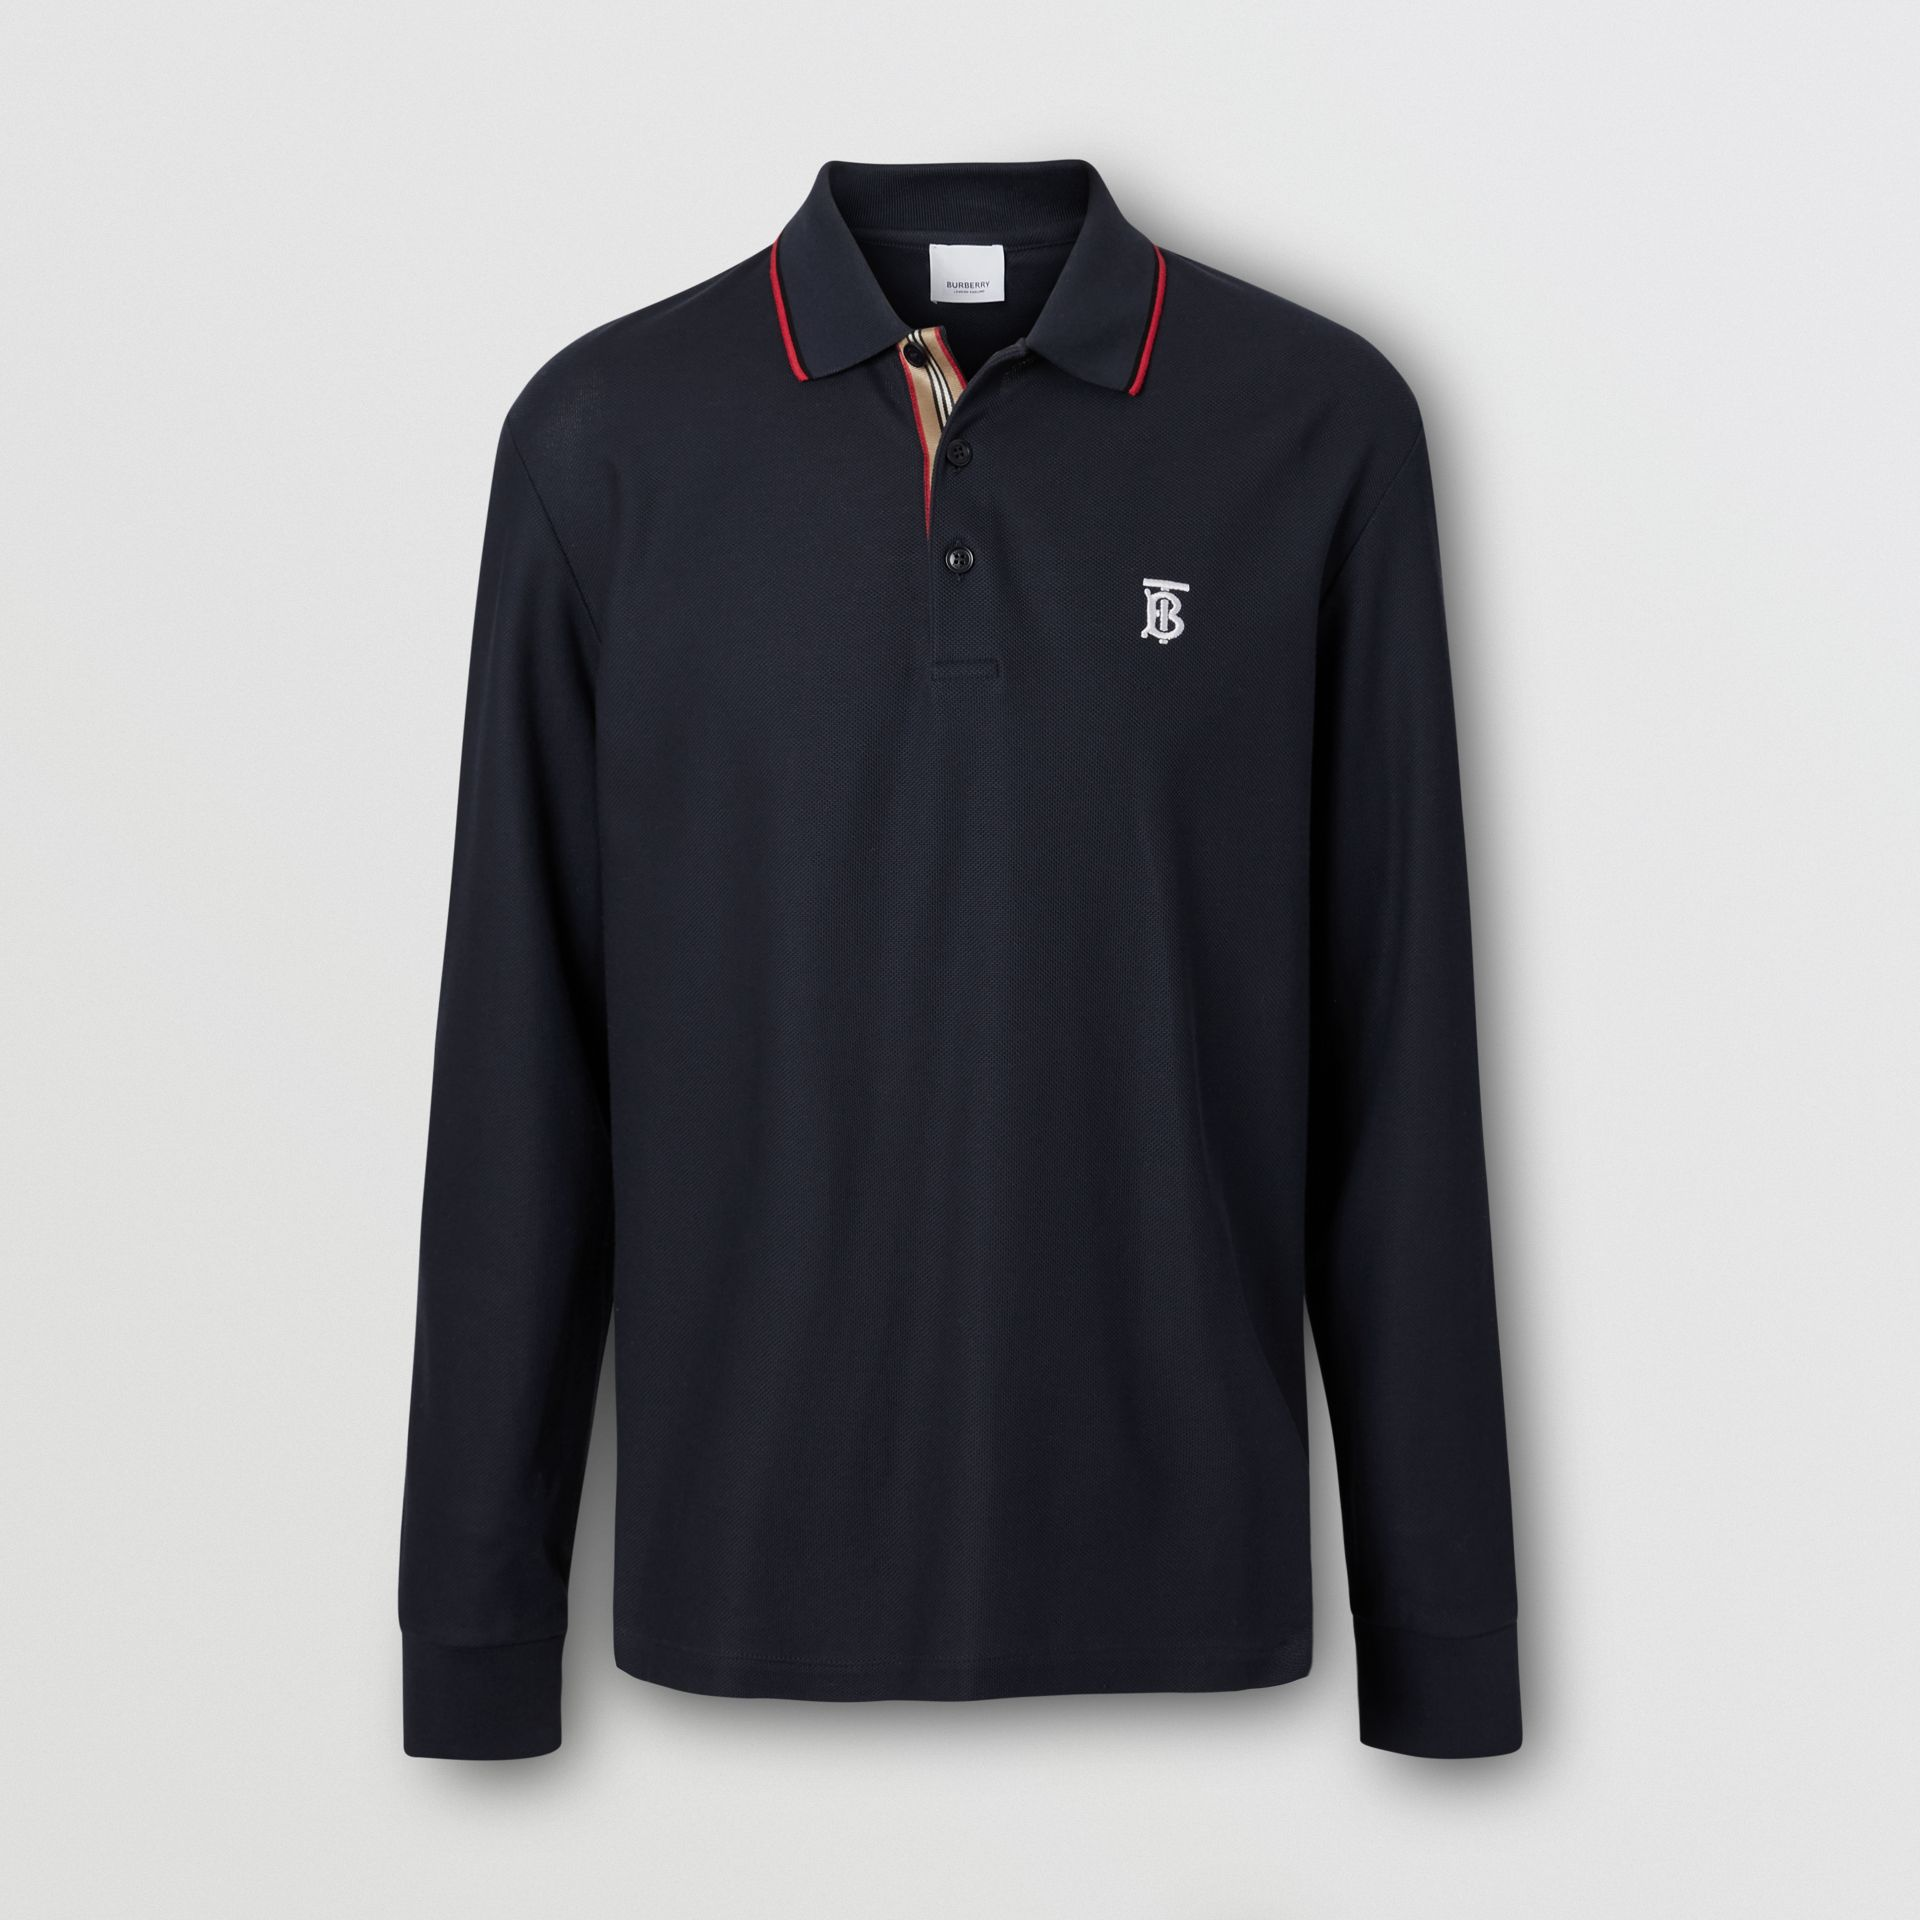 Long-sleeve Monogram Motif Cotton Piqué Polo Shirt in Navy - Men | Burberry - gallery image 3